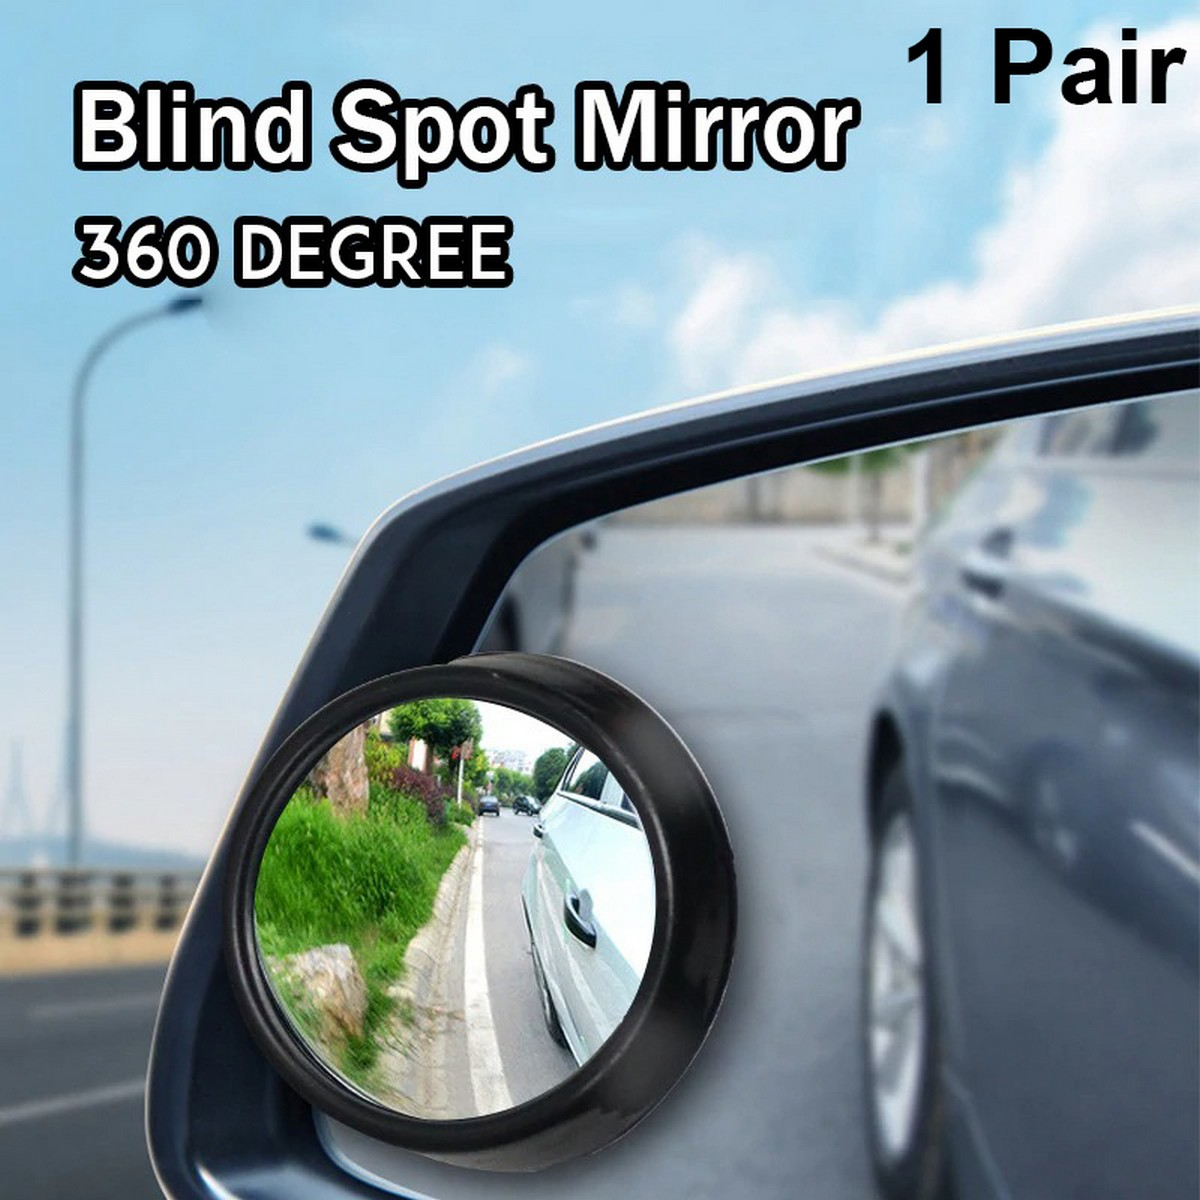 Universal Blind Spot Mirror For Car Wide Angle Round Convex Rear View 360 Degree Rotatable Reversing Lens Parking Assist Dead Zone Side Park Assistance